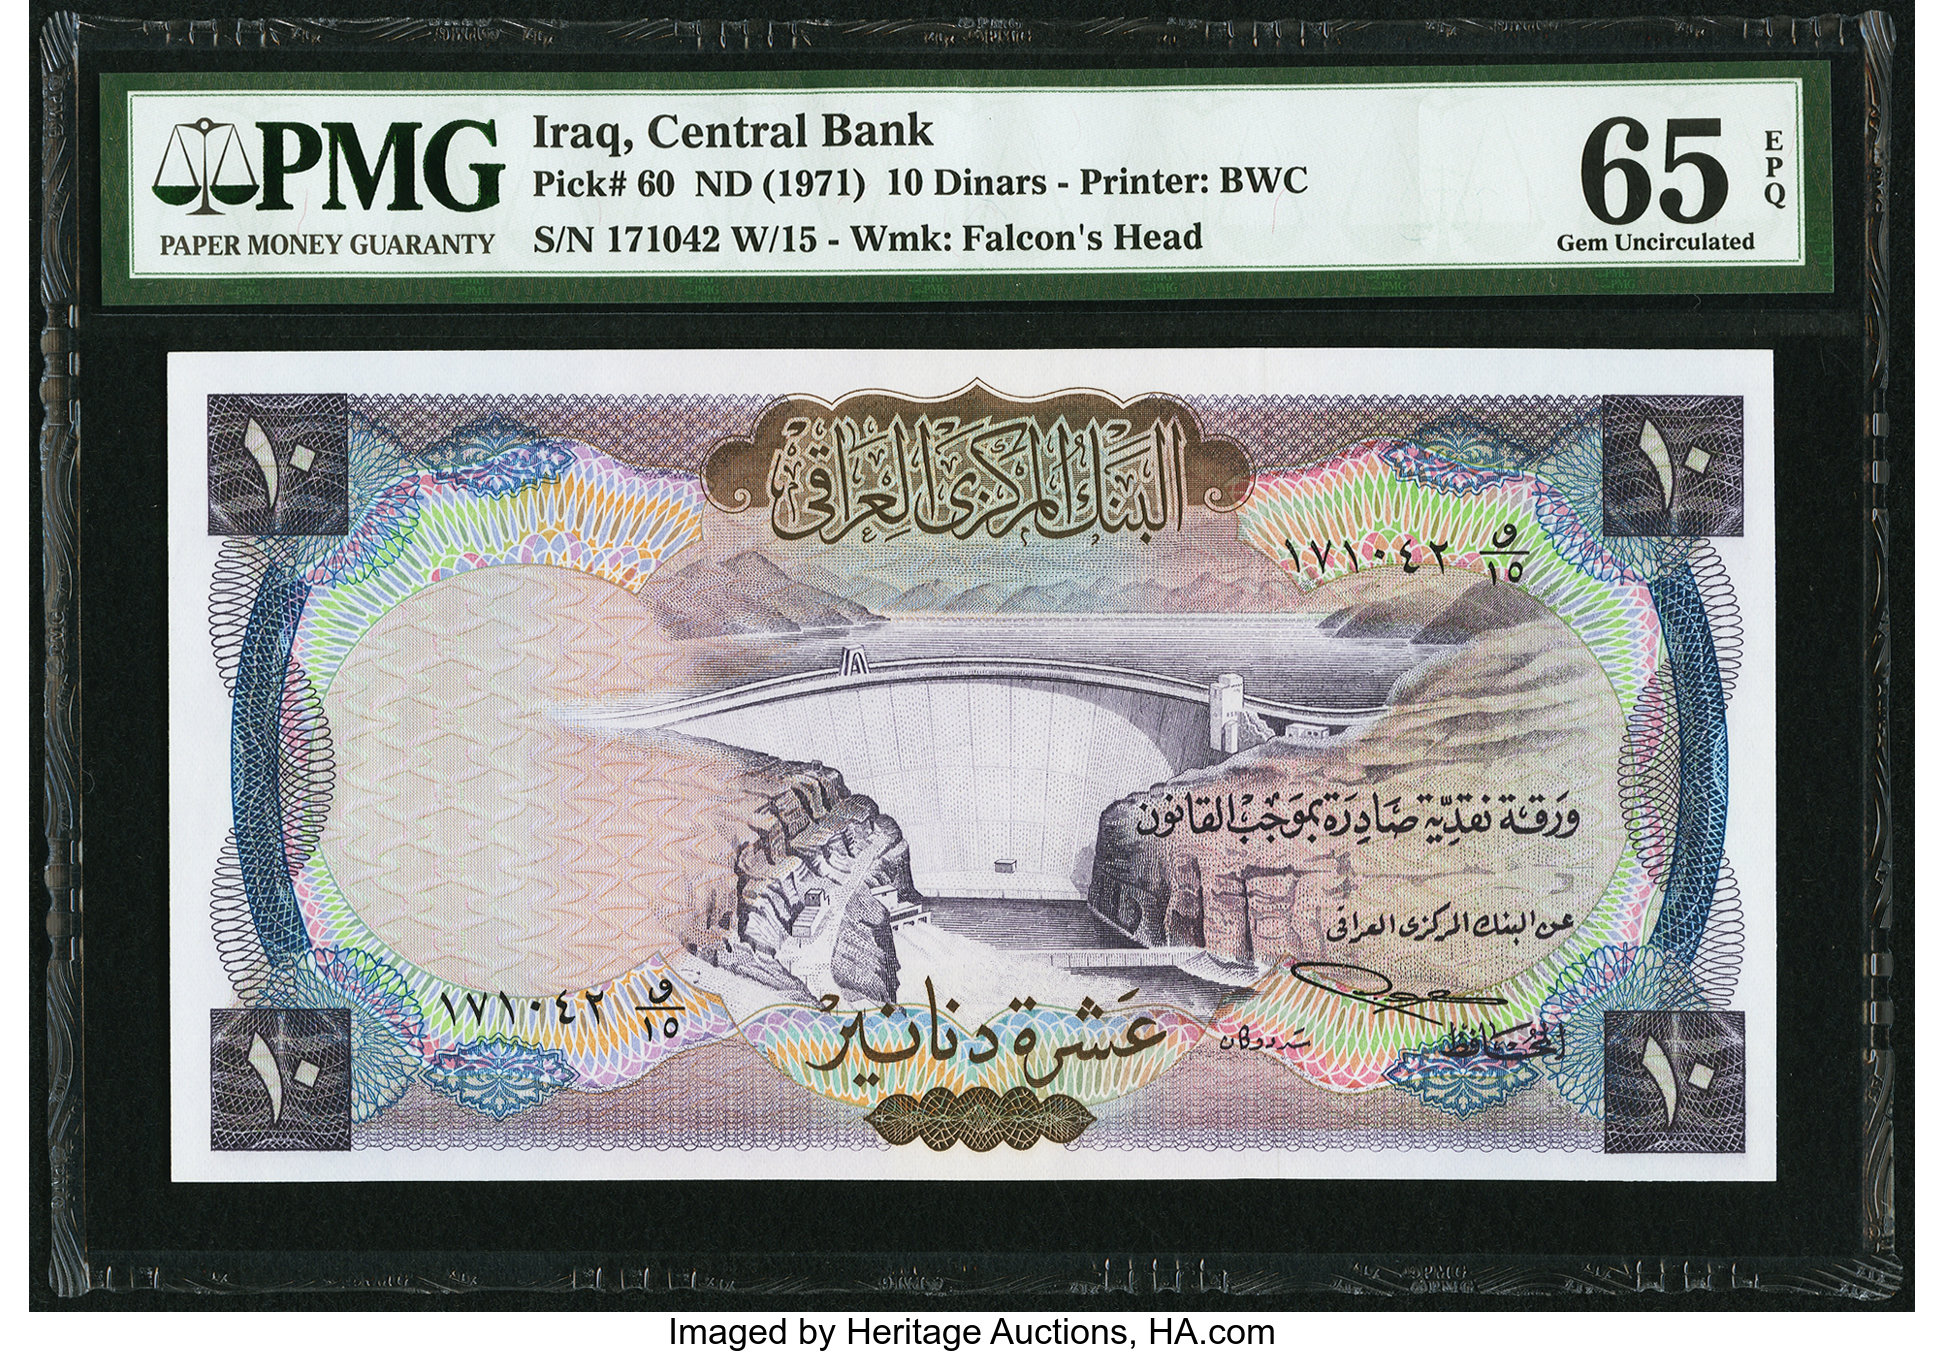 Iraq Central Bank Of 10 Dinars Nd